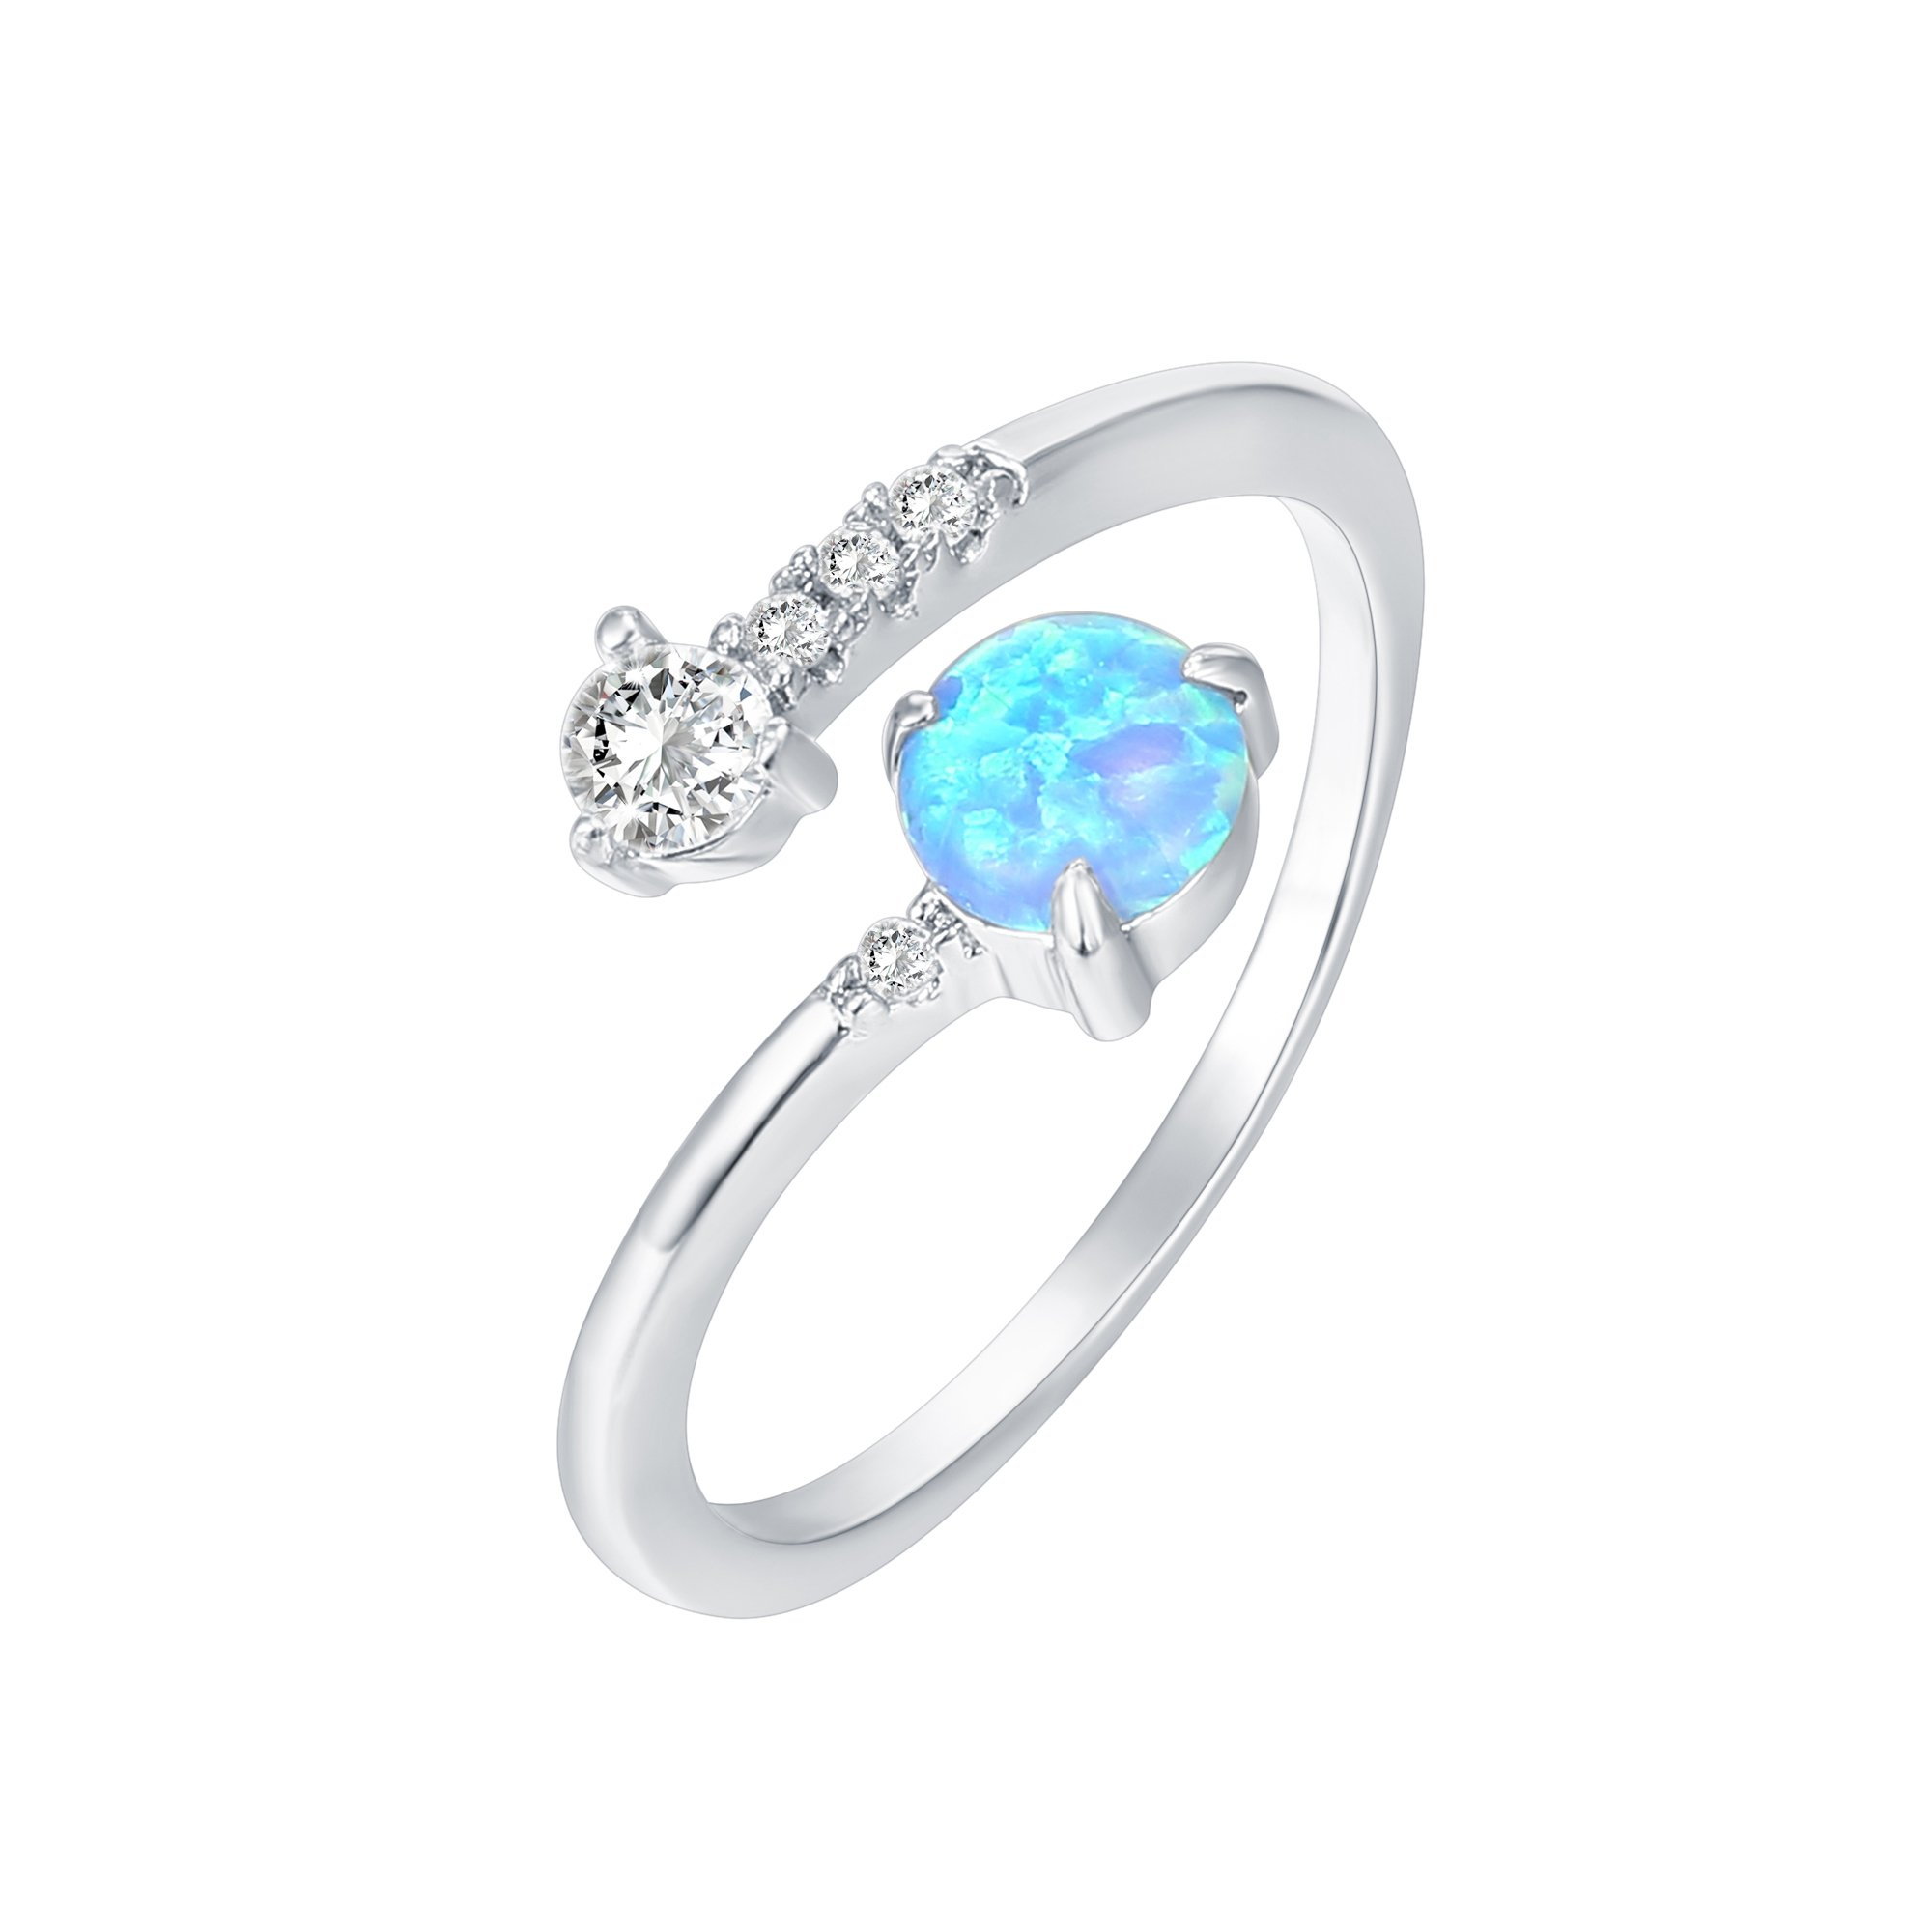 PAVOI 14K White Gold Plated Wrap Cubic Zirconia and Created Blue Opal Ring Stackable Ring